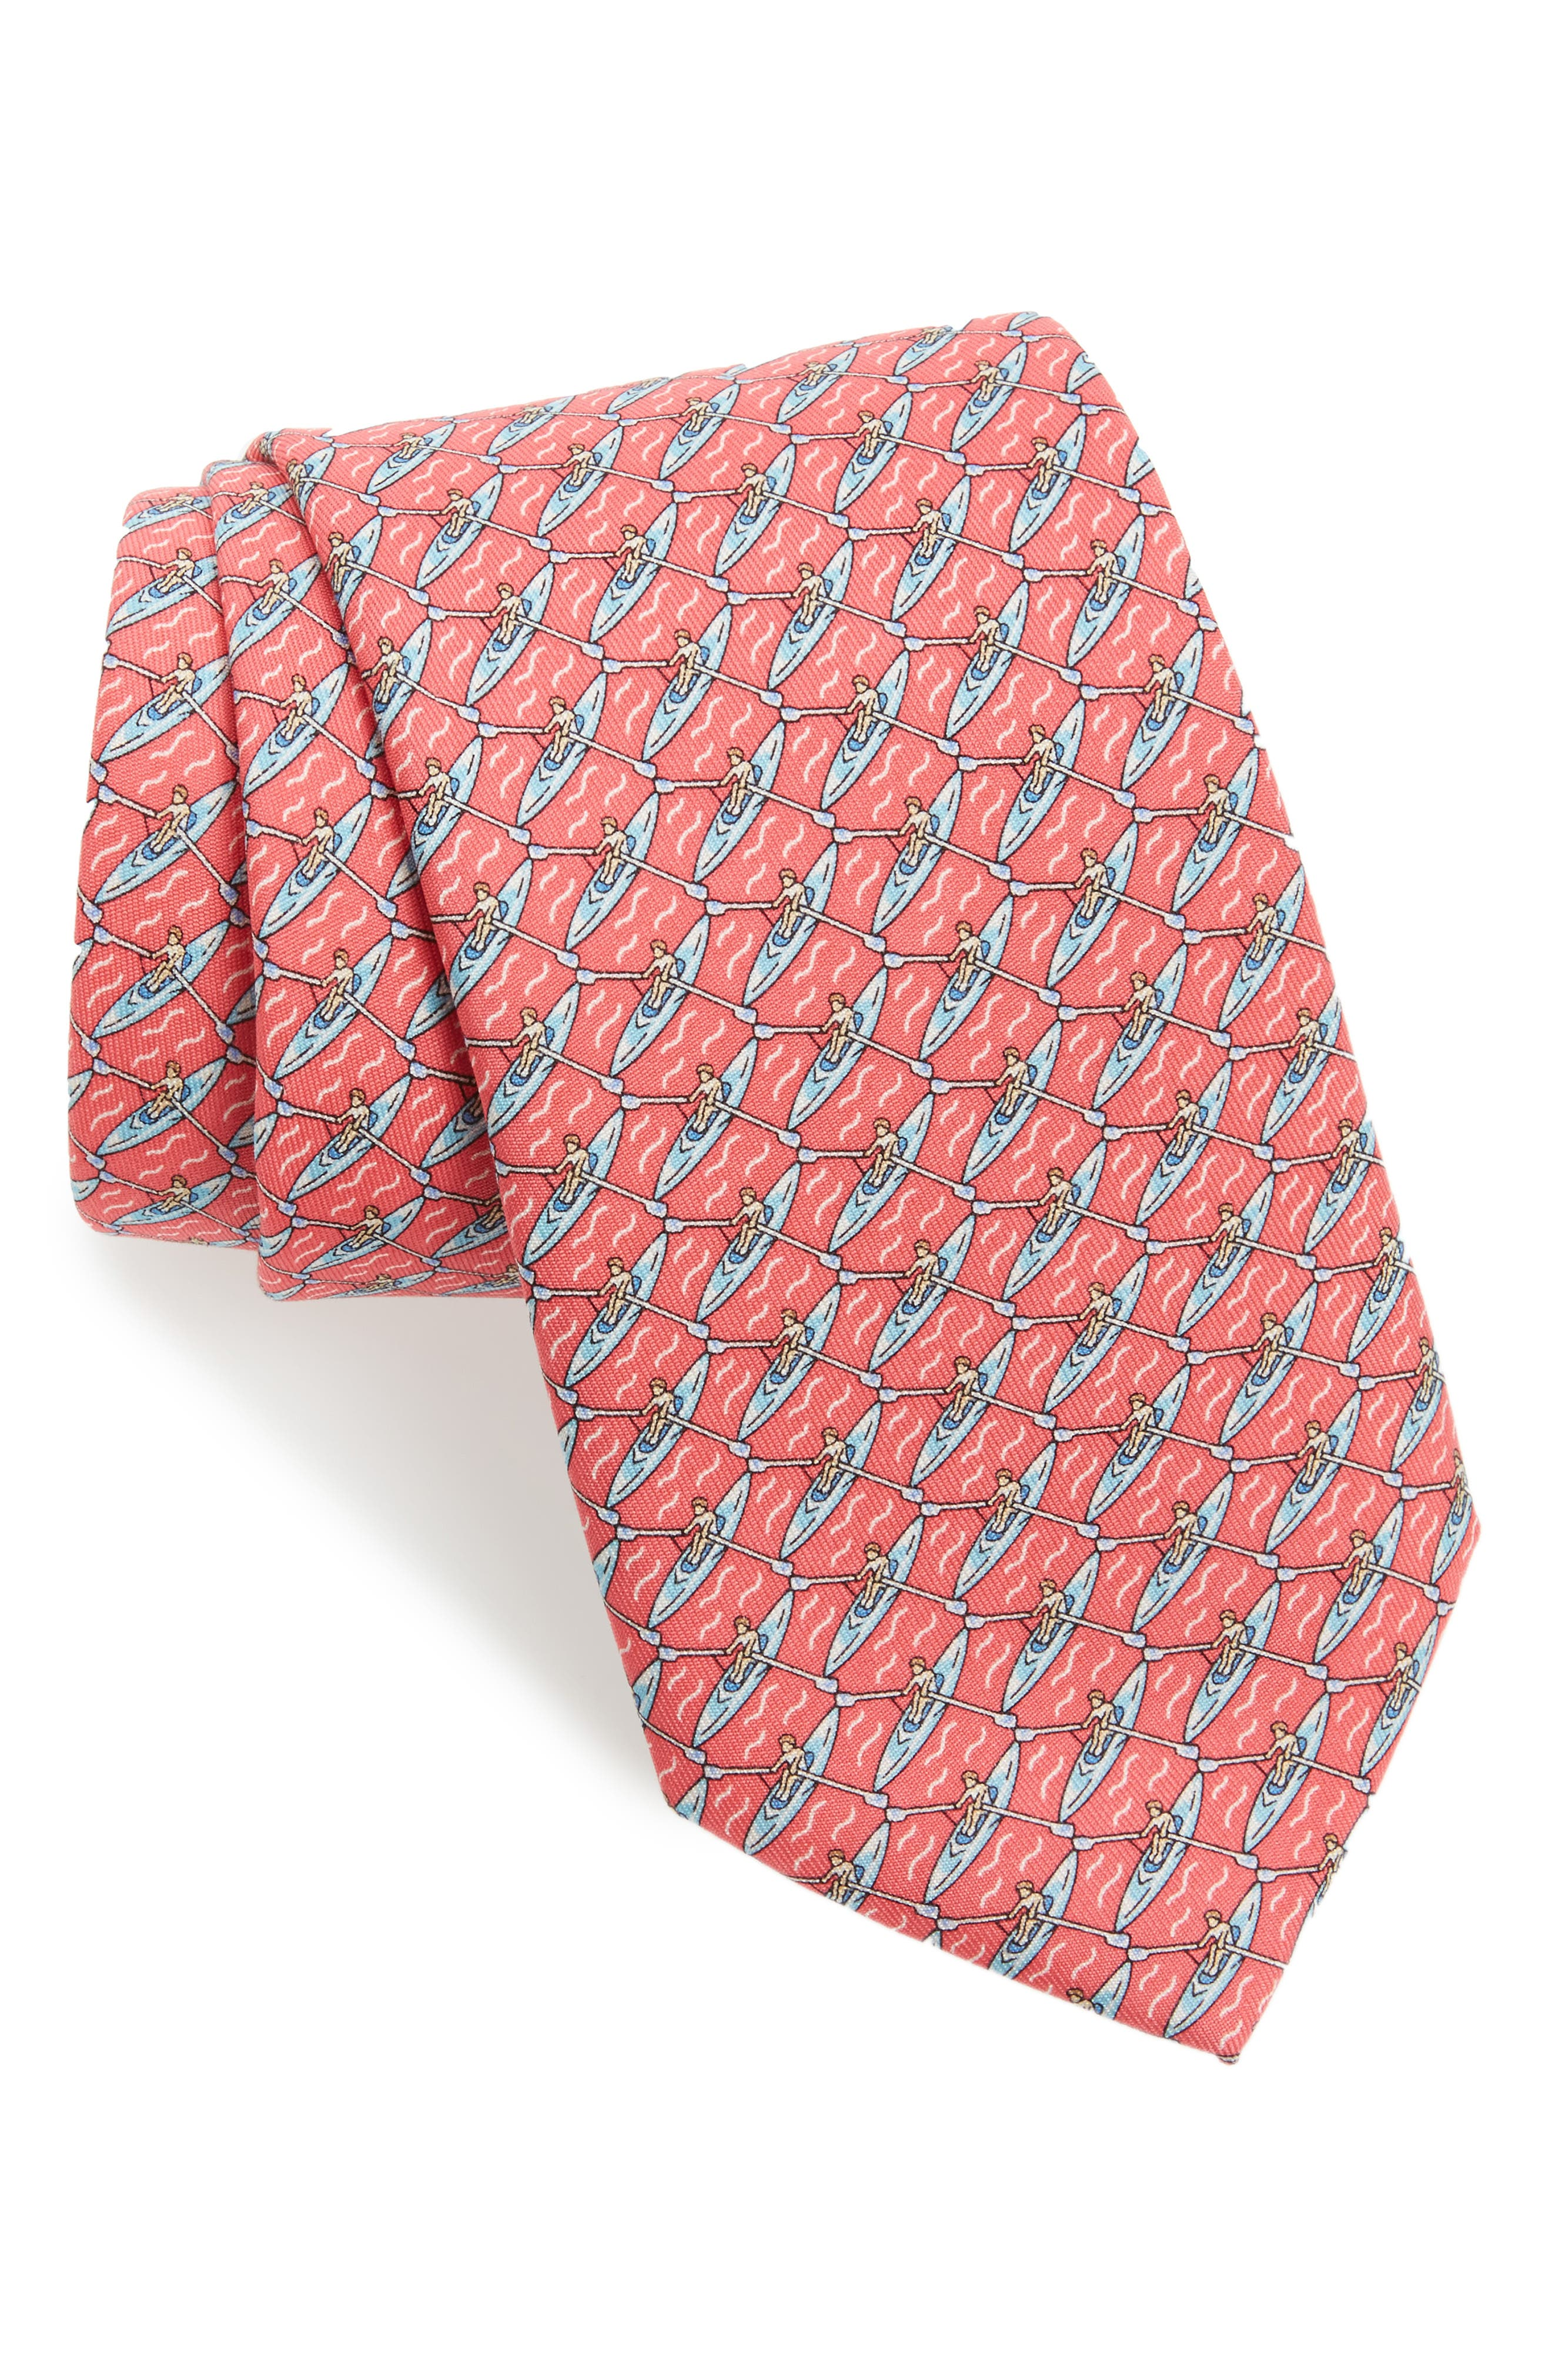 Alternate Image 1 Selected - vineyard vines Rowing Silk Tie